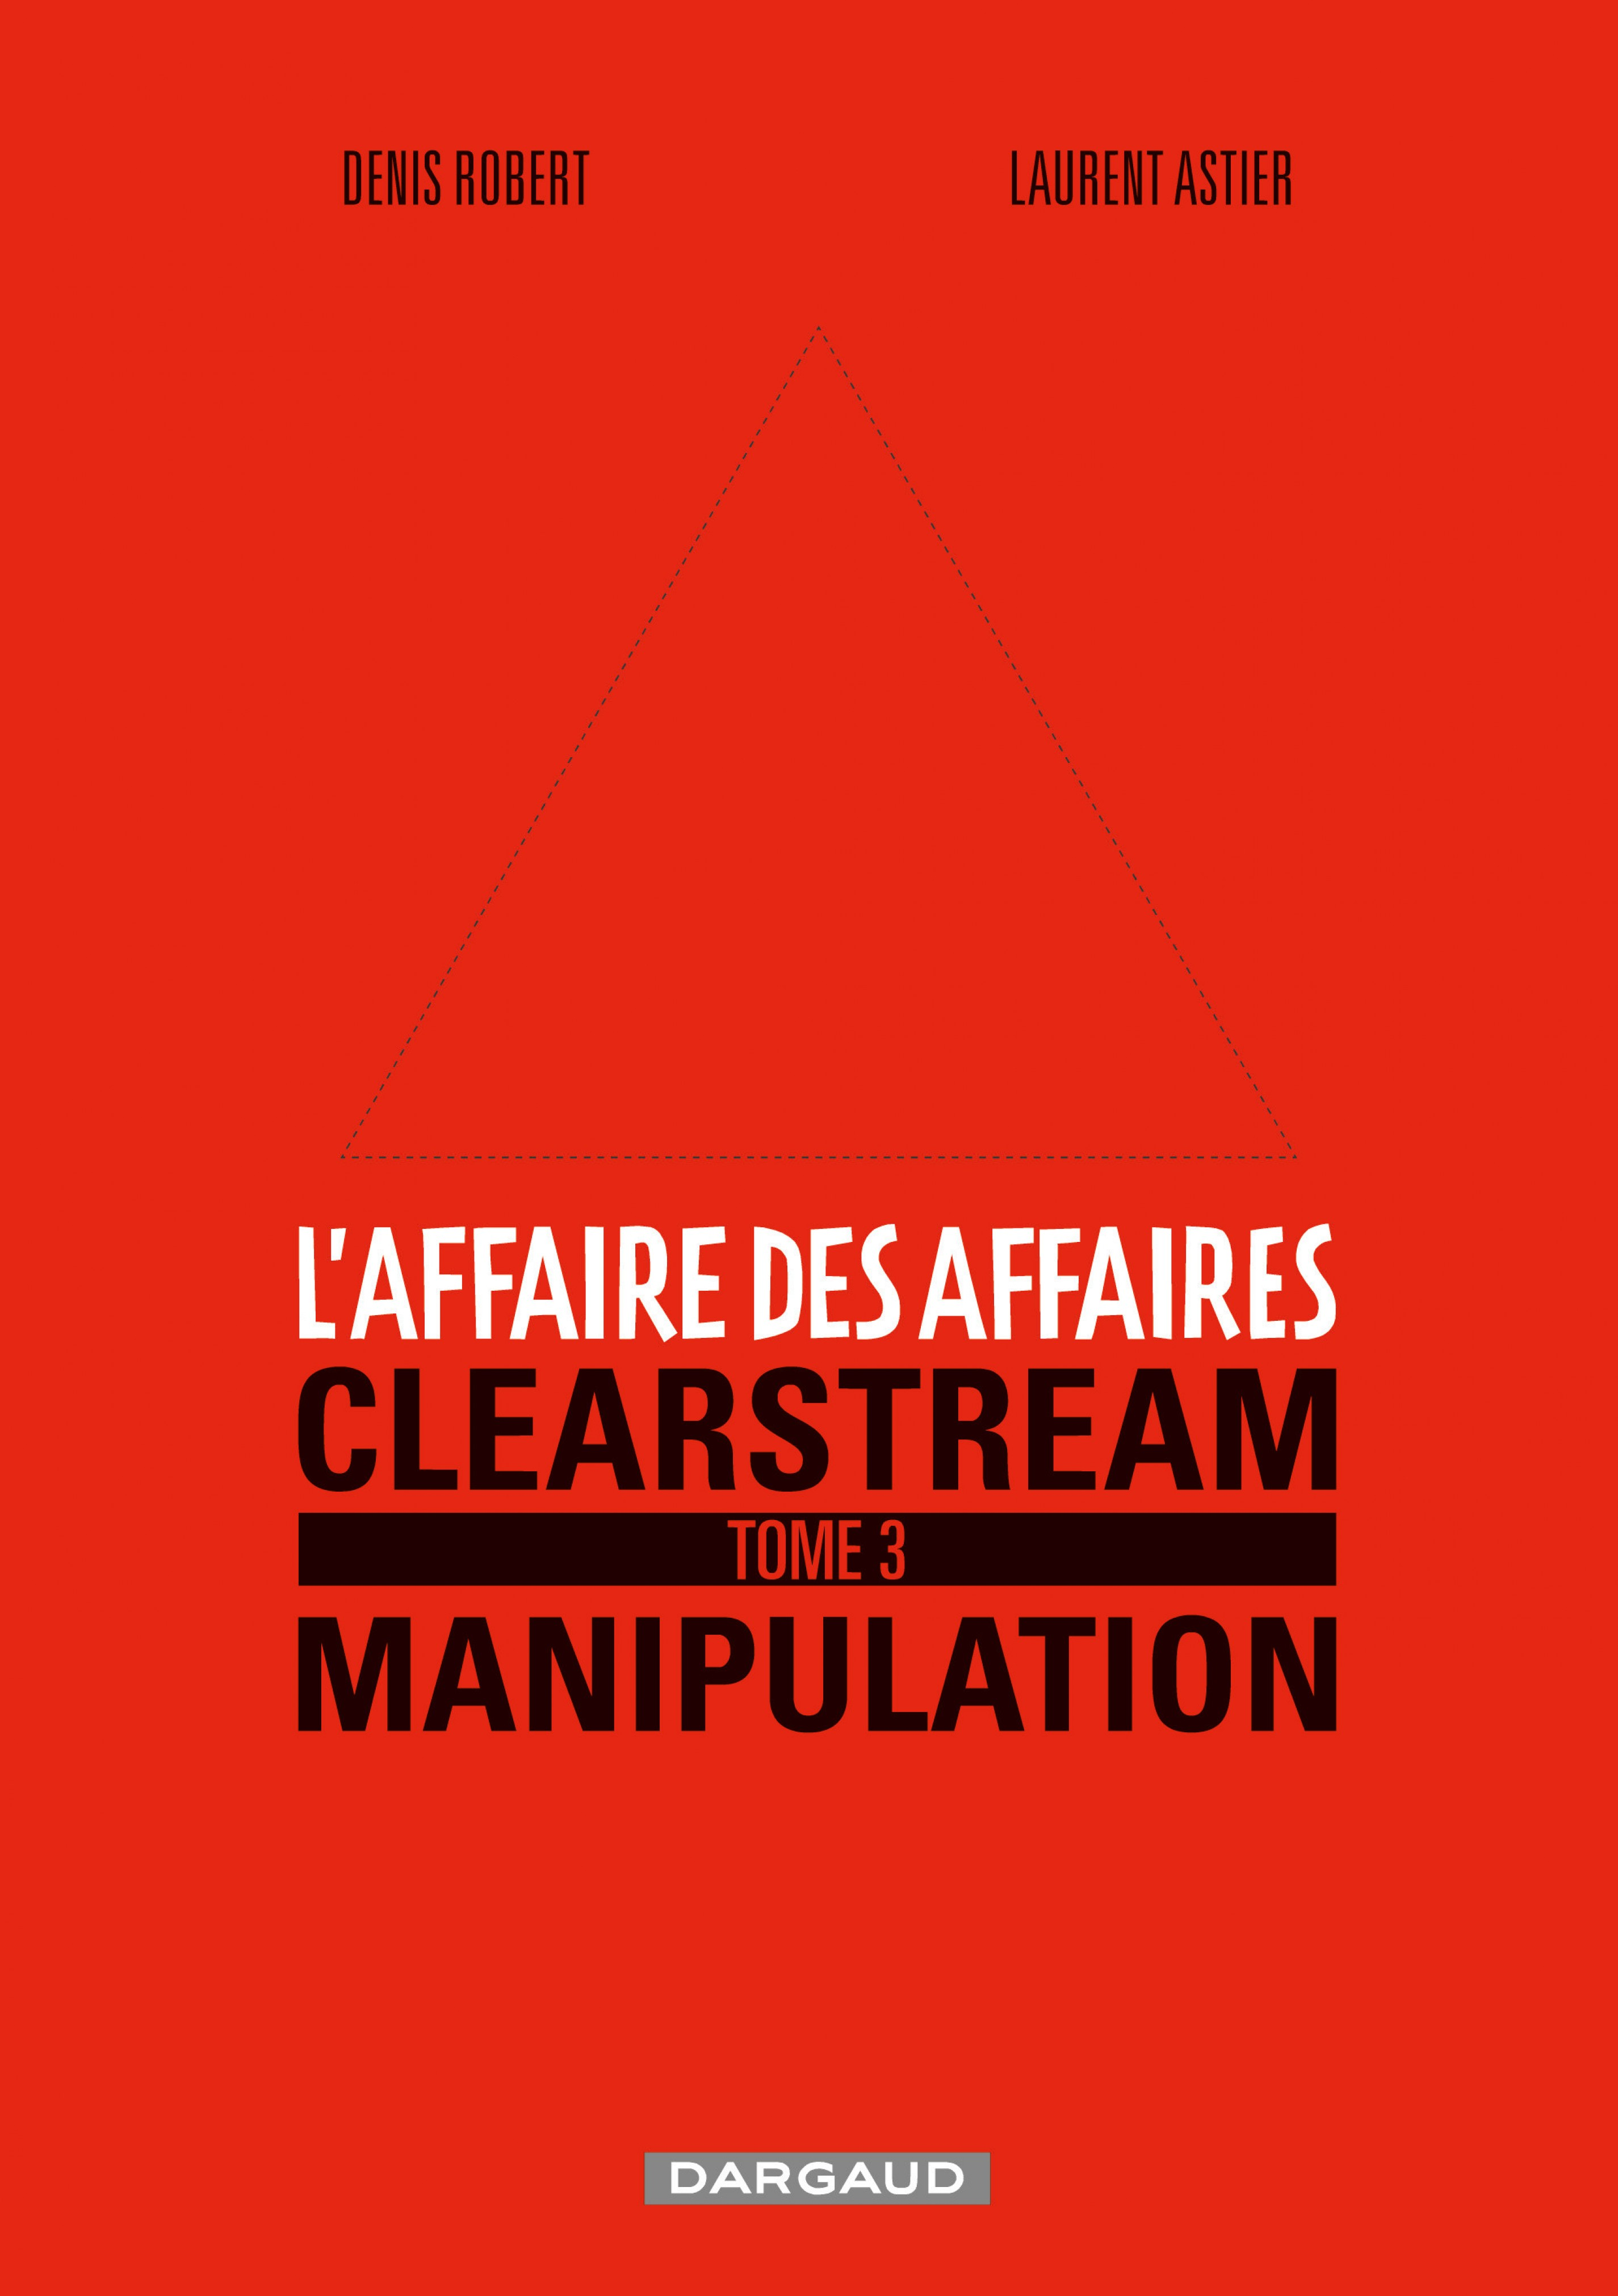 Vignette du livre L'affaire des affaires - Tome 3 - Clearstream manipulation